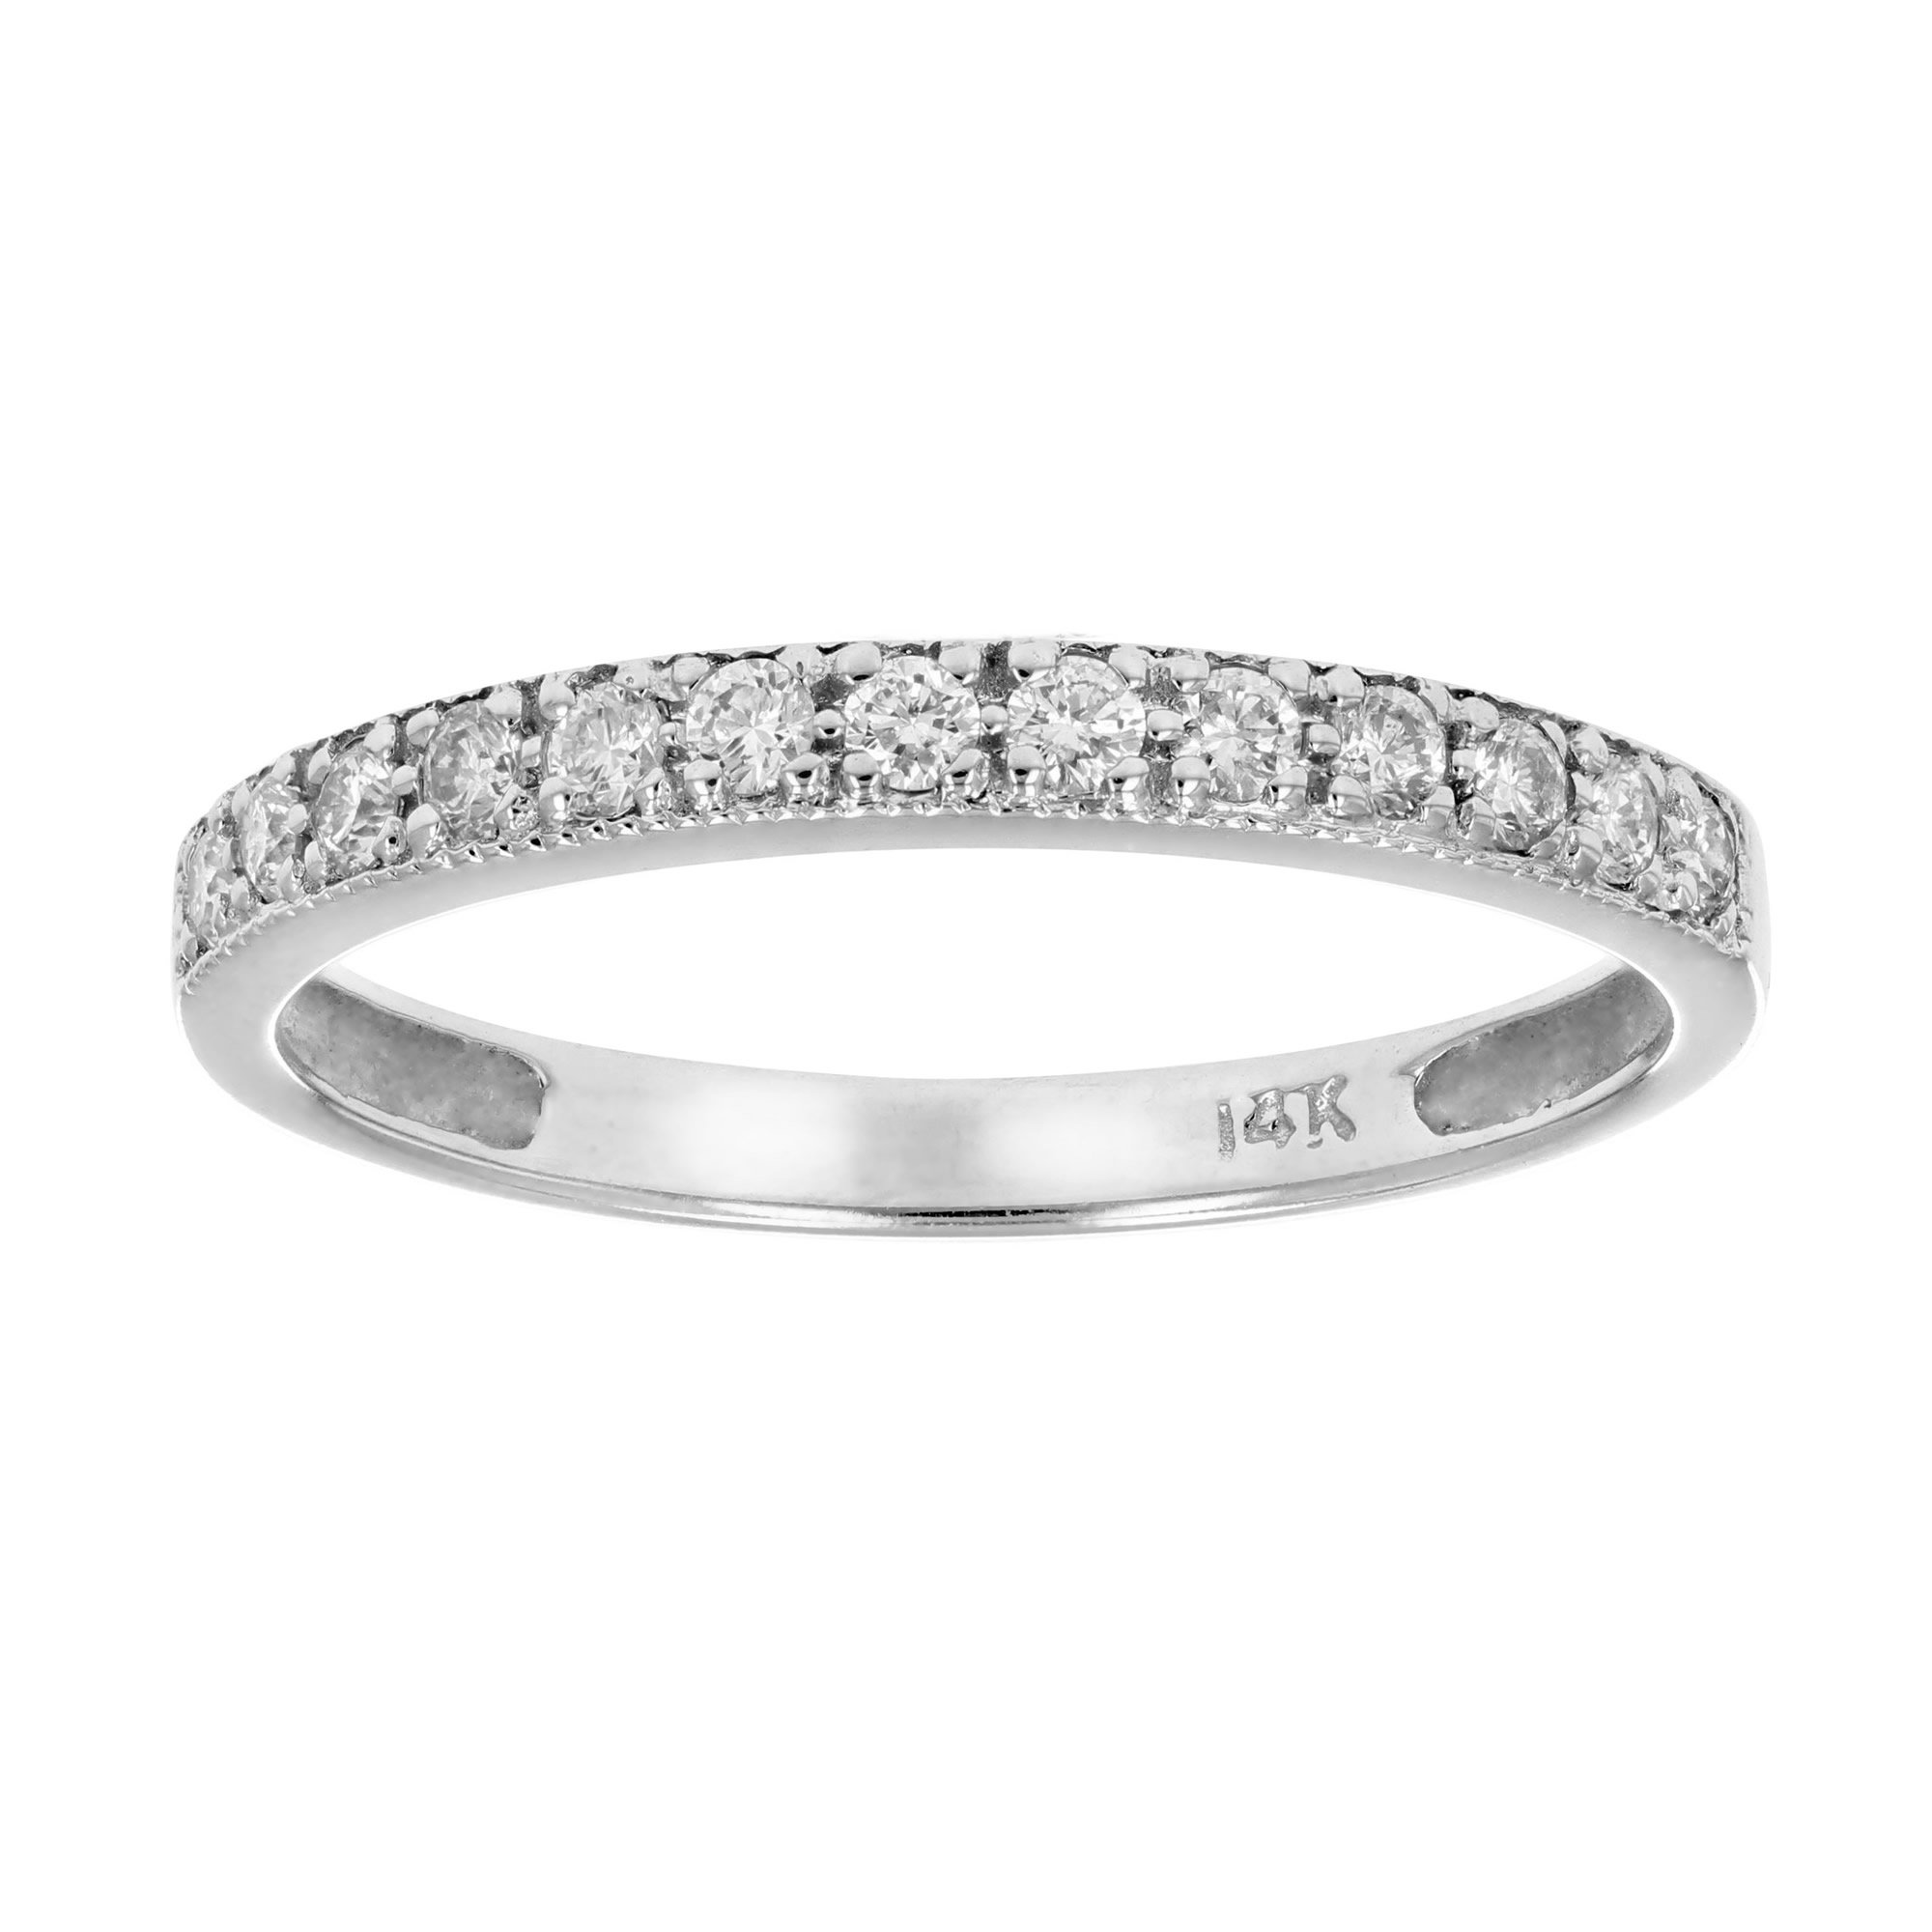 1/5 CT Milgrain Diamond Wedding Band 14K White Gold In size 6.5